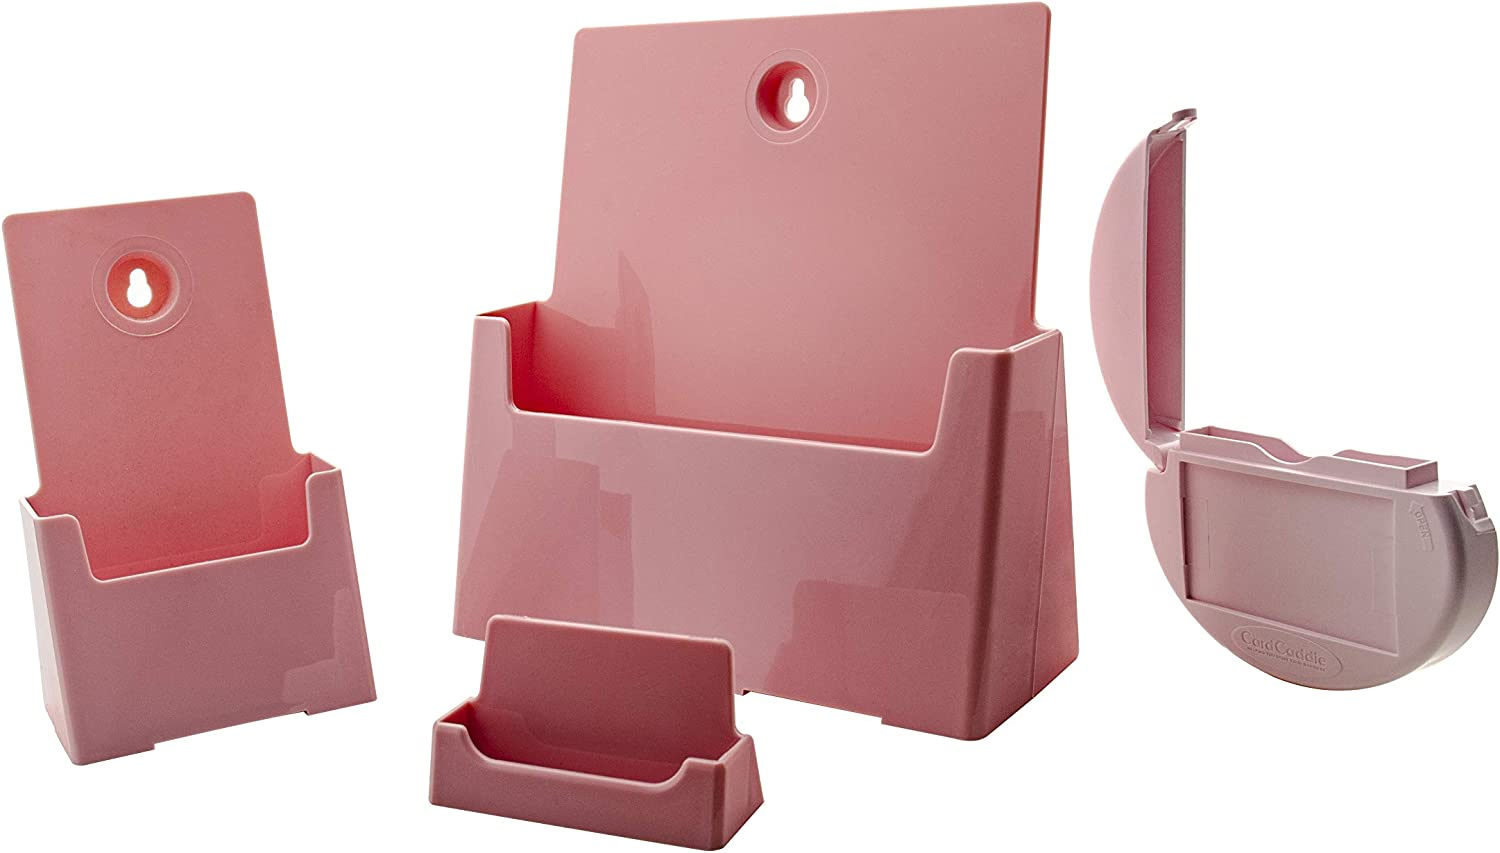 Marketing Holders Mary Kay Pamphlets Starter Kit 1 Catalog Holder, 1 Tri Fold Brochure Holder, 1 Business Card Stand & 1 Vehicle Card Caddie All Pink Acrylic 4 Displays 1 Low Price